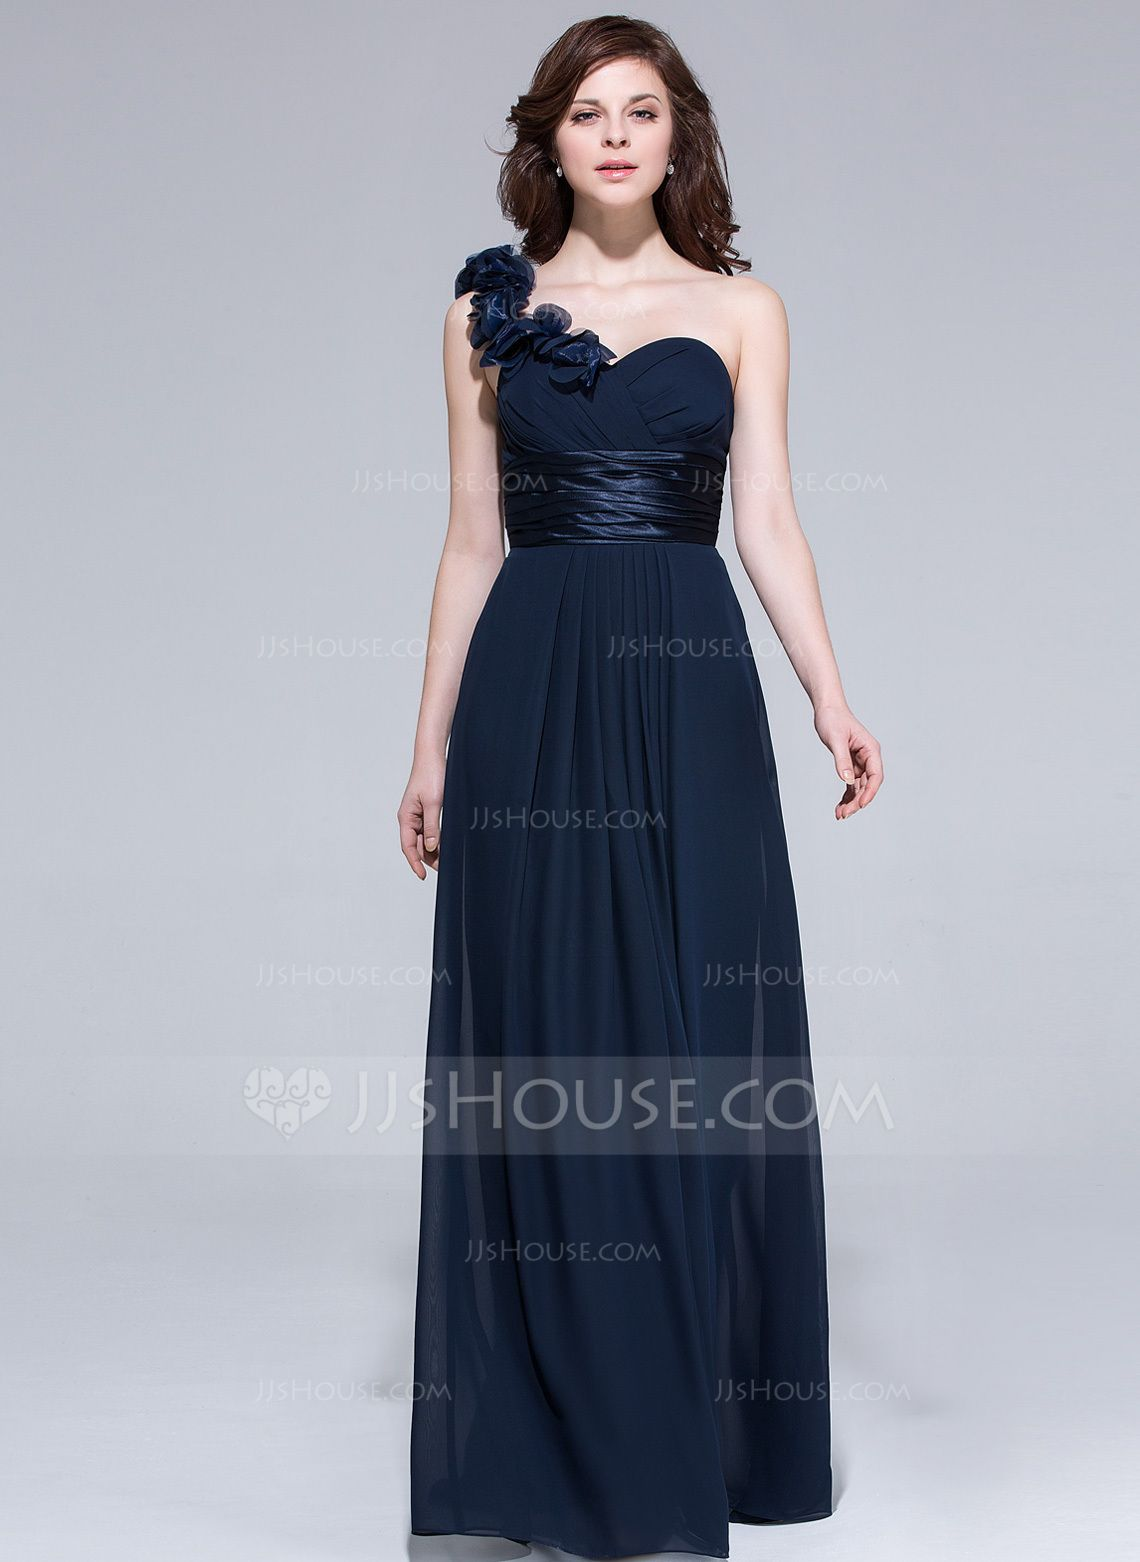 df309ce475b3 A-Line/Princess One-Shoulder Floor-Length Chiffon Bridesmaid Dress With Ruffle  Flower(s) (007037284) - JJsHouse